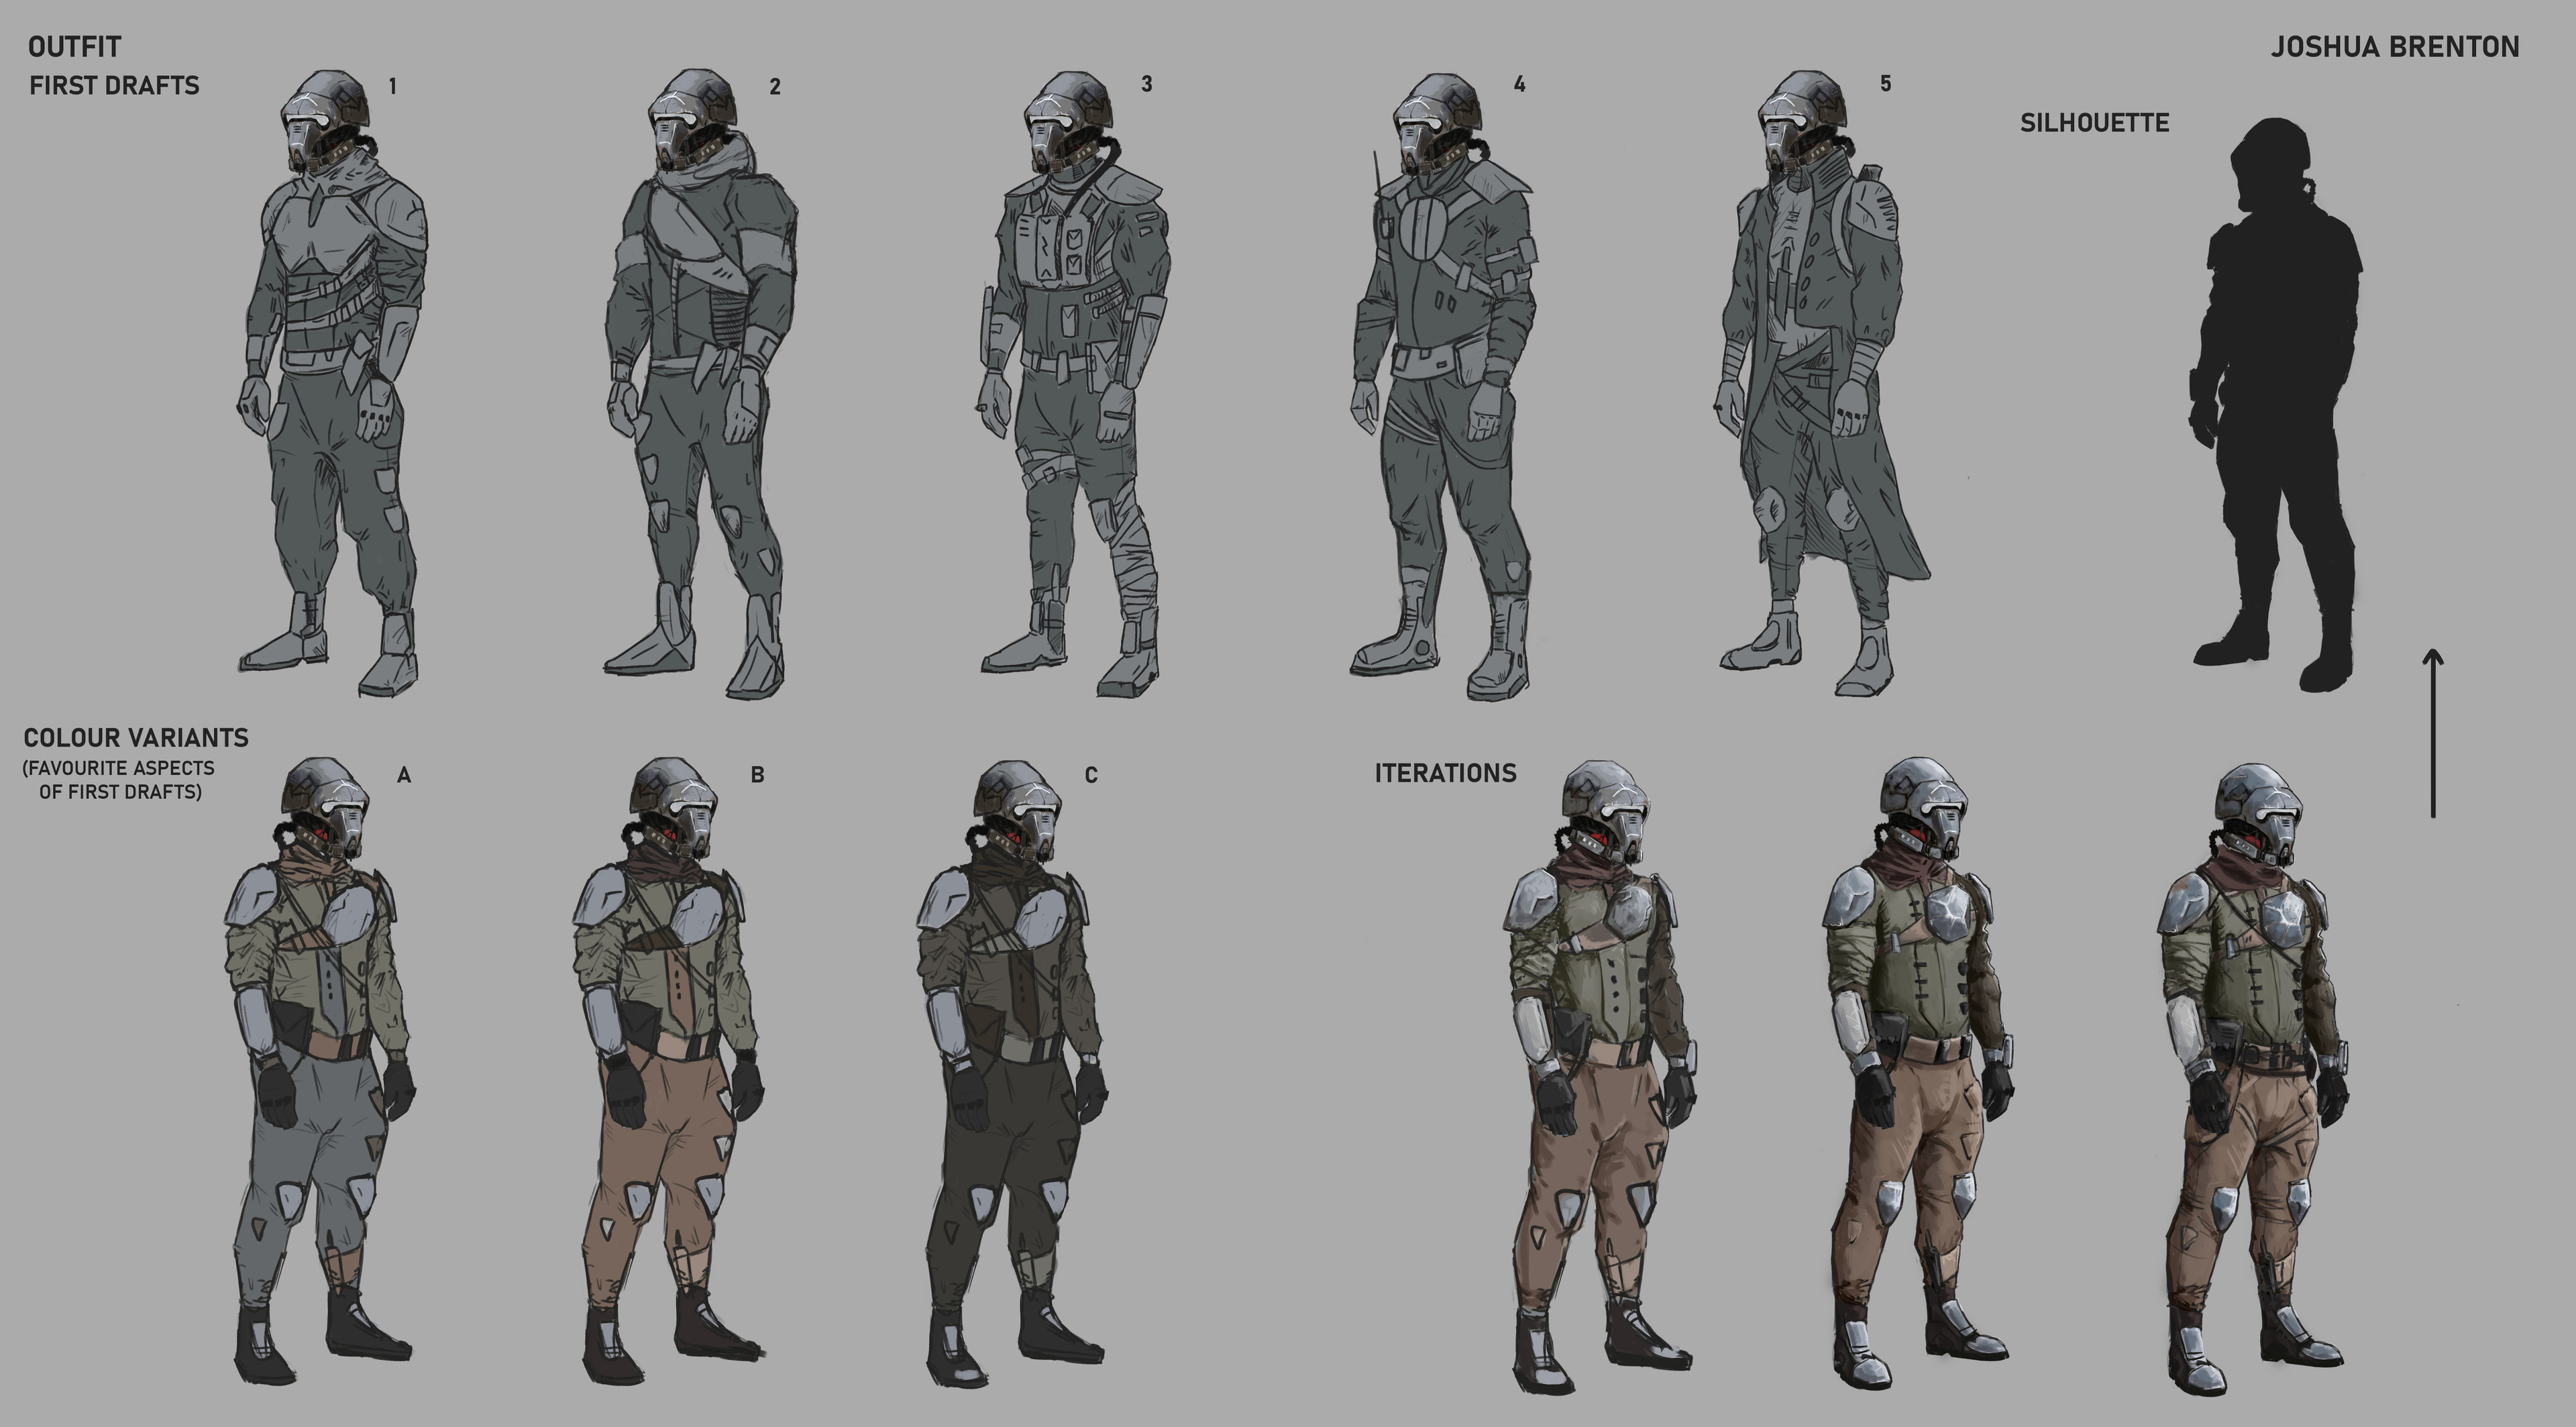 Variants of the character, colour variants based on scheme and iterations of final.